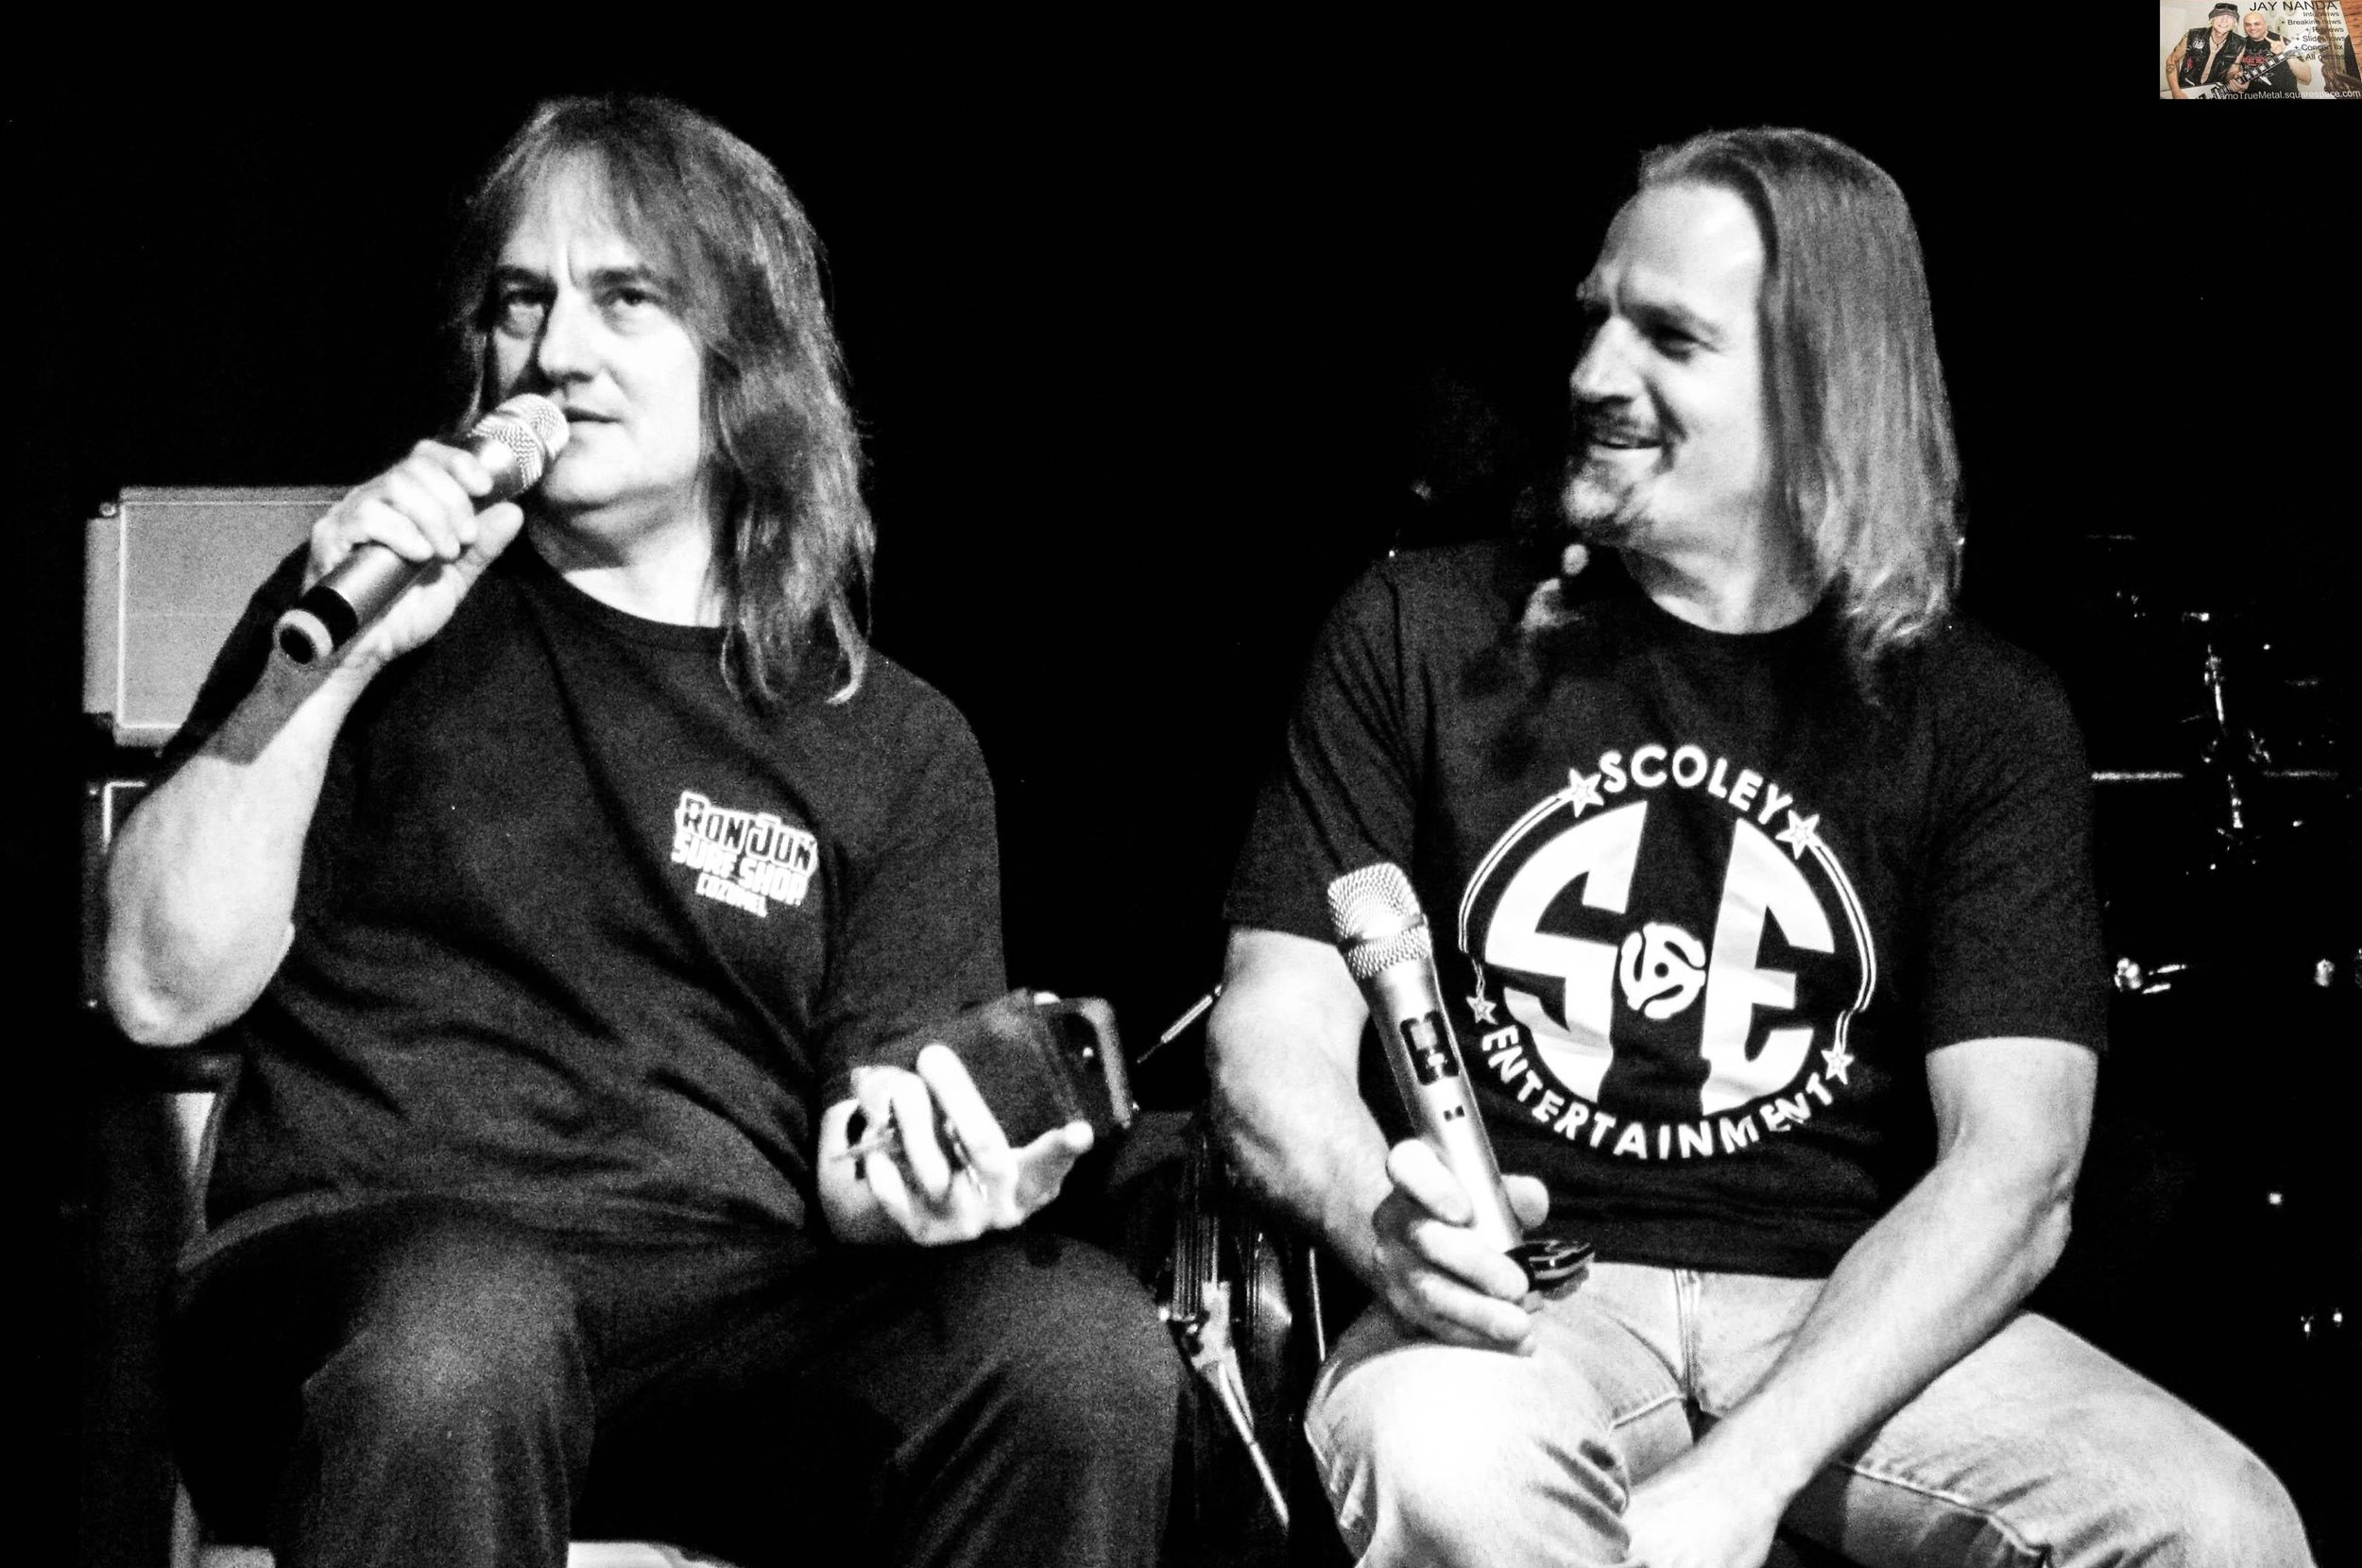 Ron and Bobby Jarzombek not only performed together for a rare instance but jointly took part in the Q&A just prior to its ending.